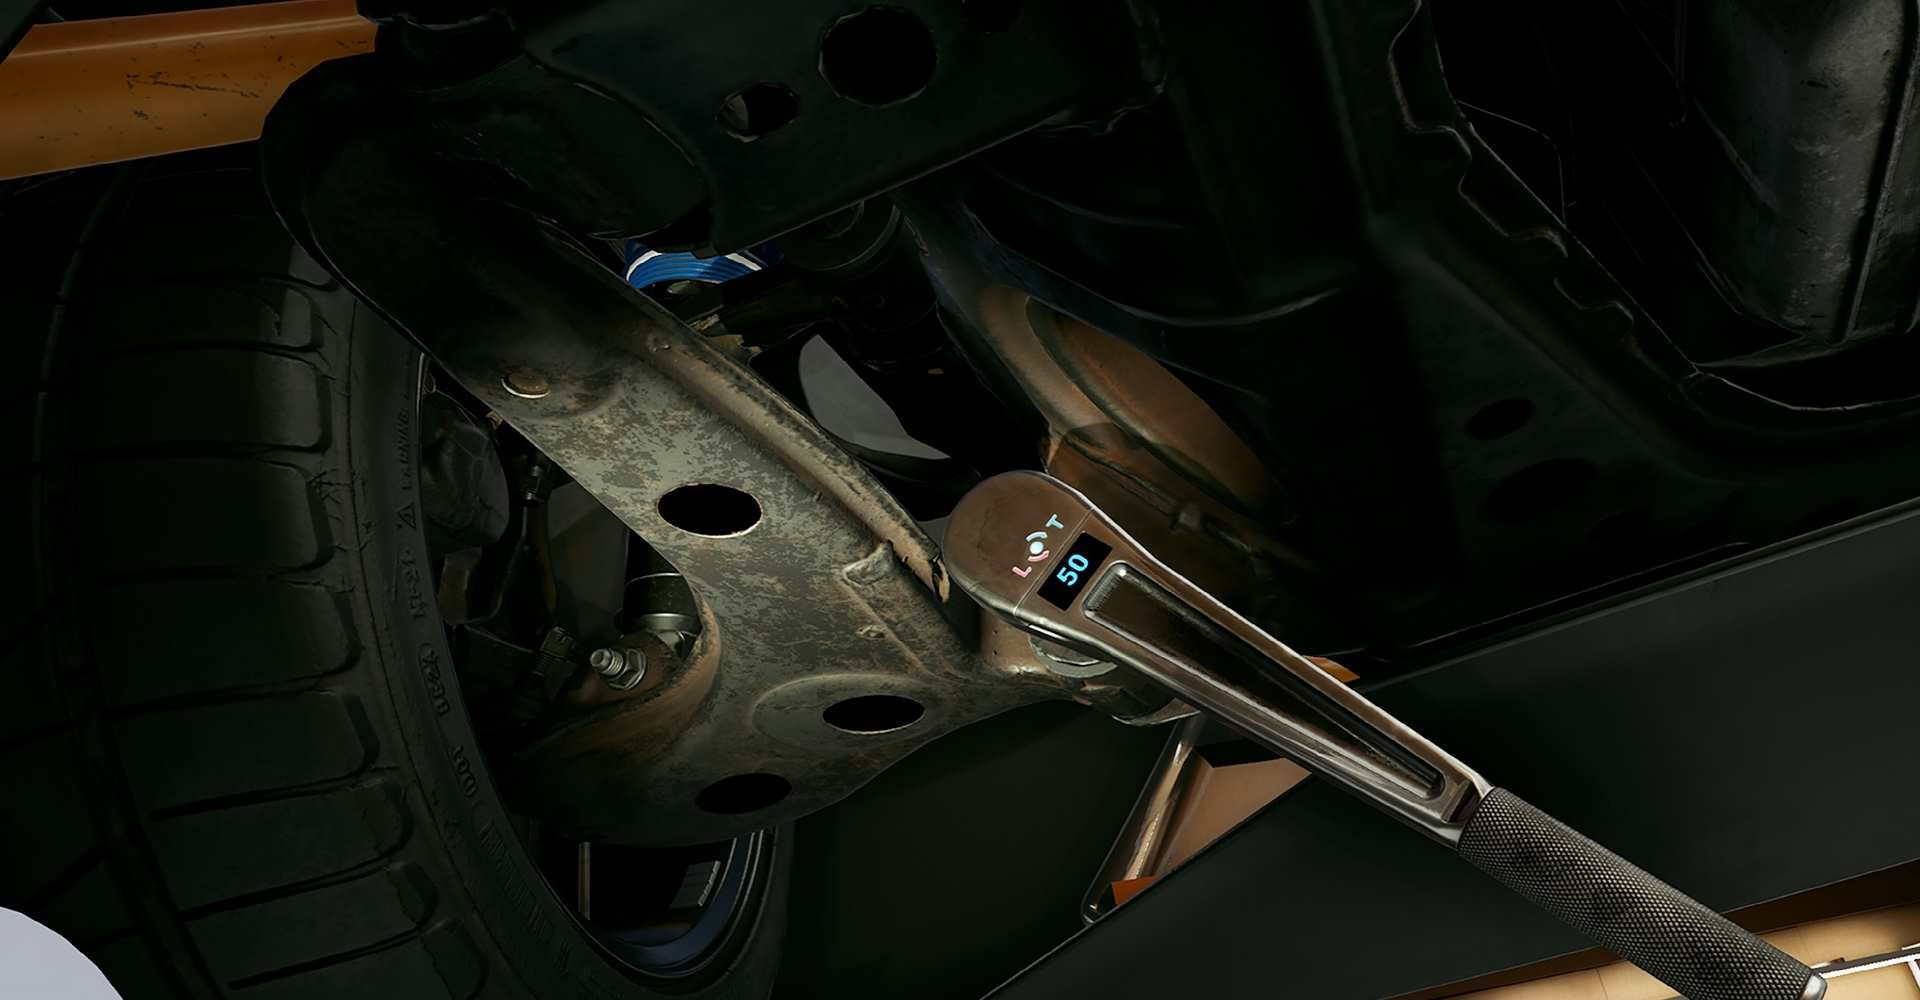 VR Game Wrench Teaches Car Mechanics without All the Oil